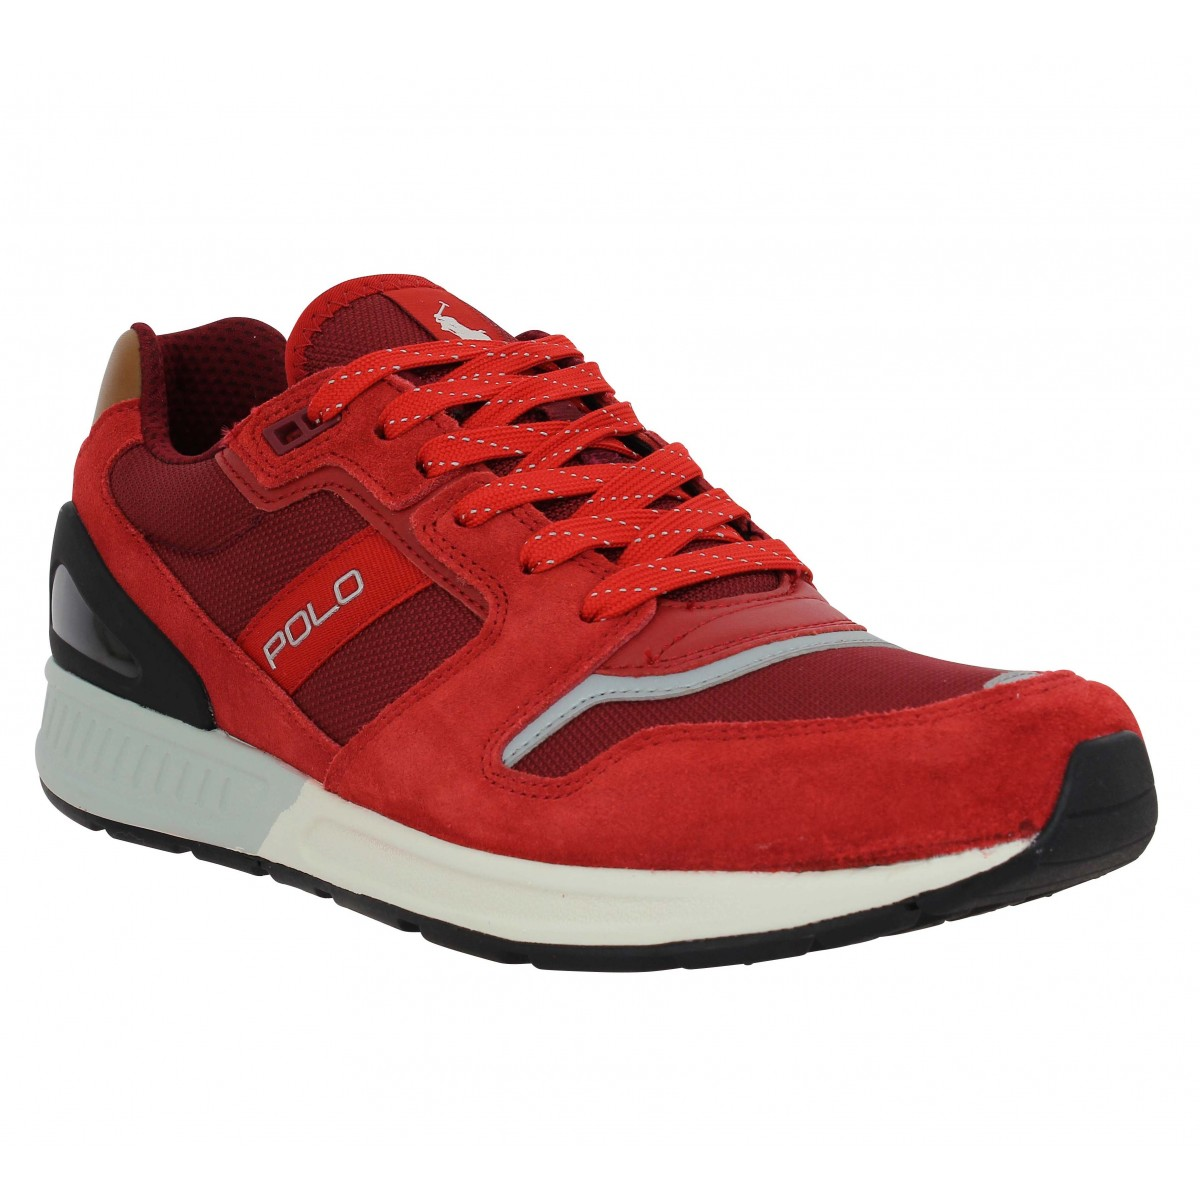 Polo ralph lauren train 100 toile homme rouge homme   Fanny chaussures 104f0f9eab4e